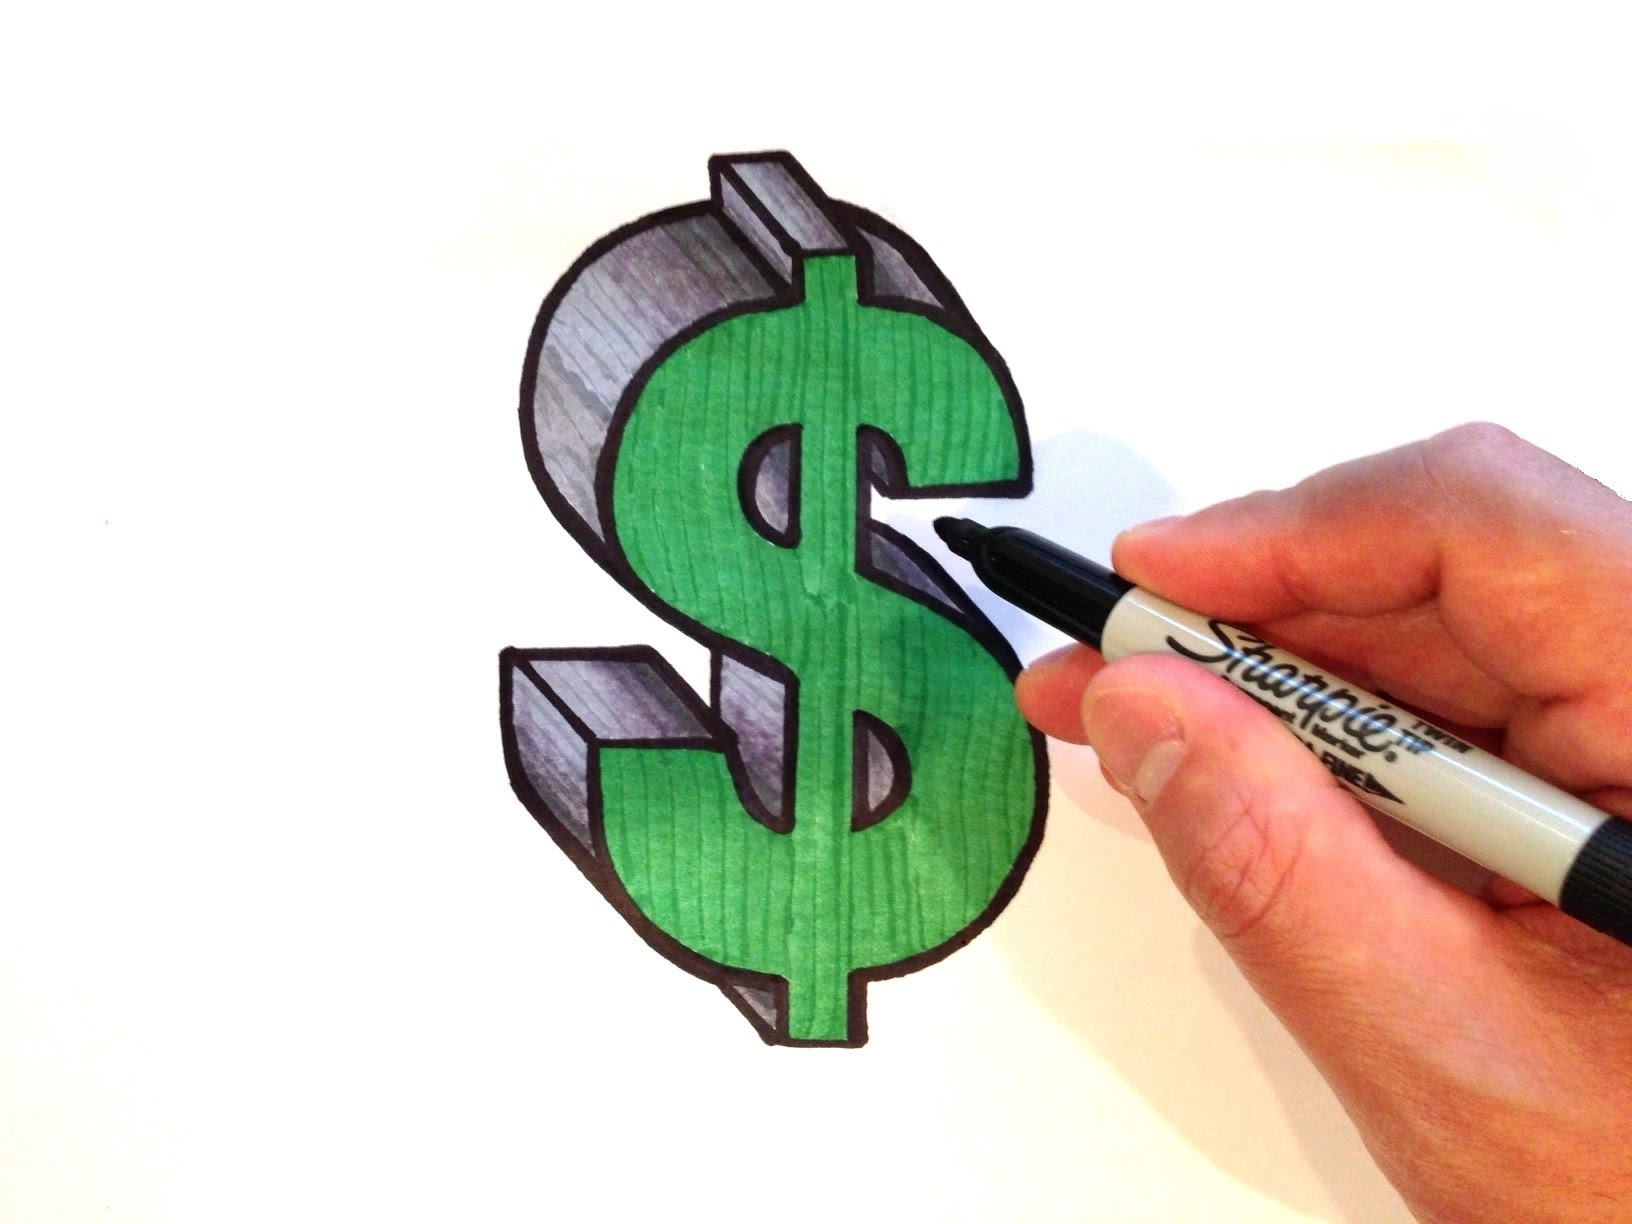 Drawn symbol drawing To Dollar YouTube in How